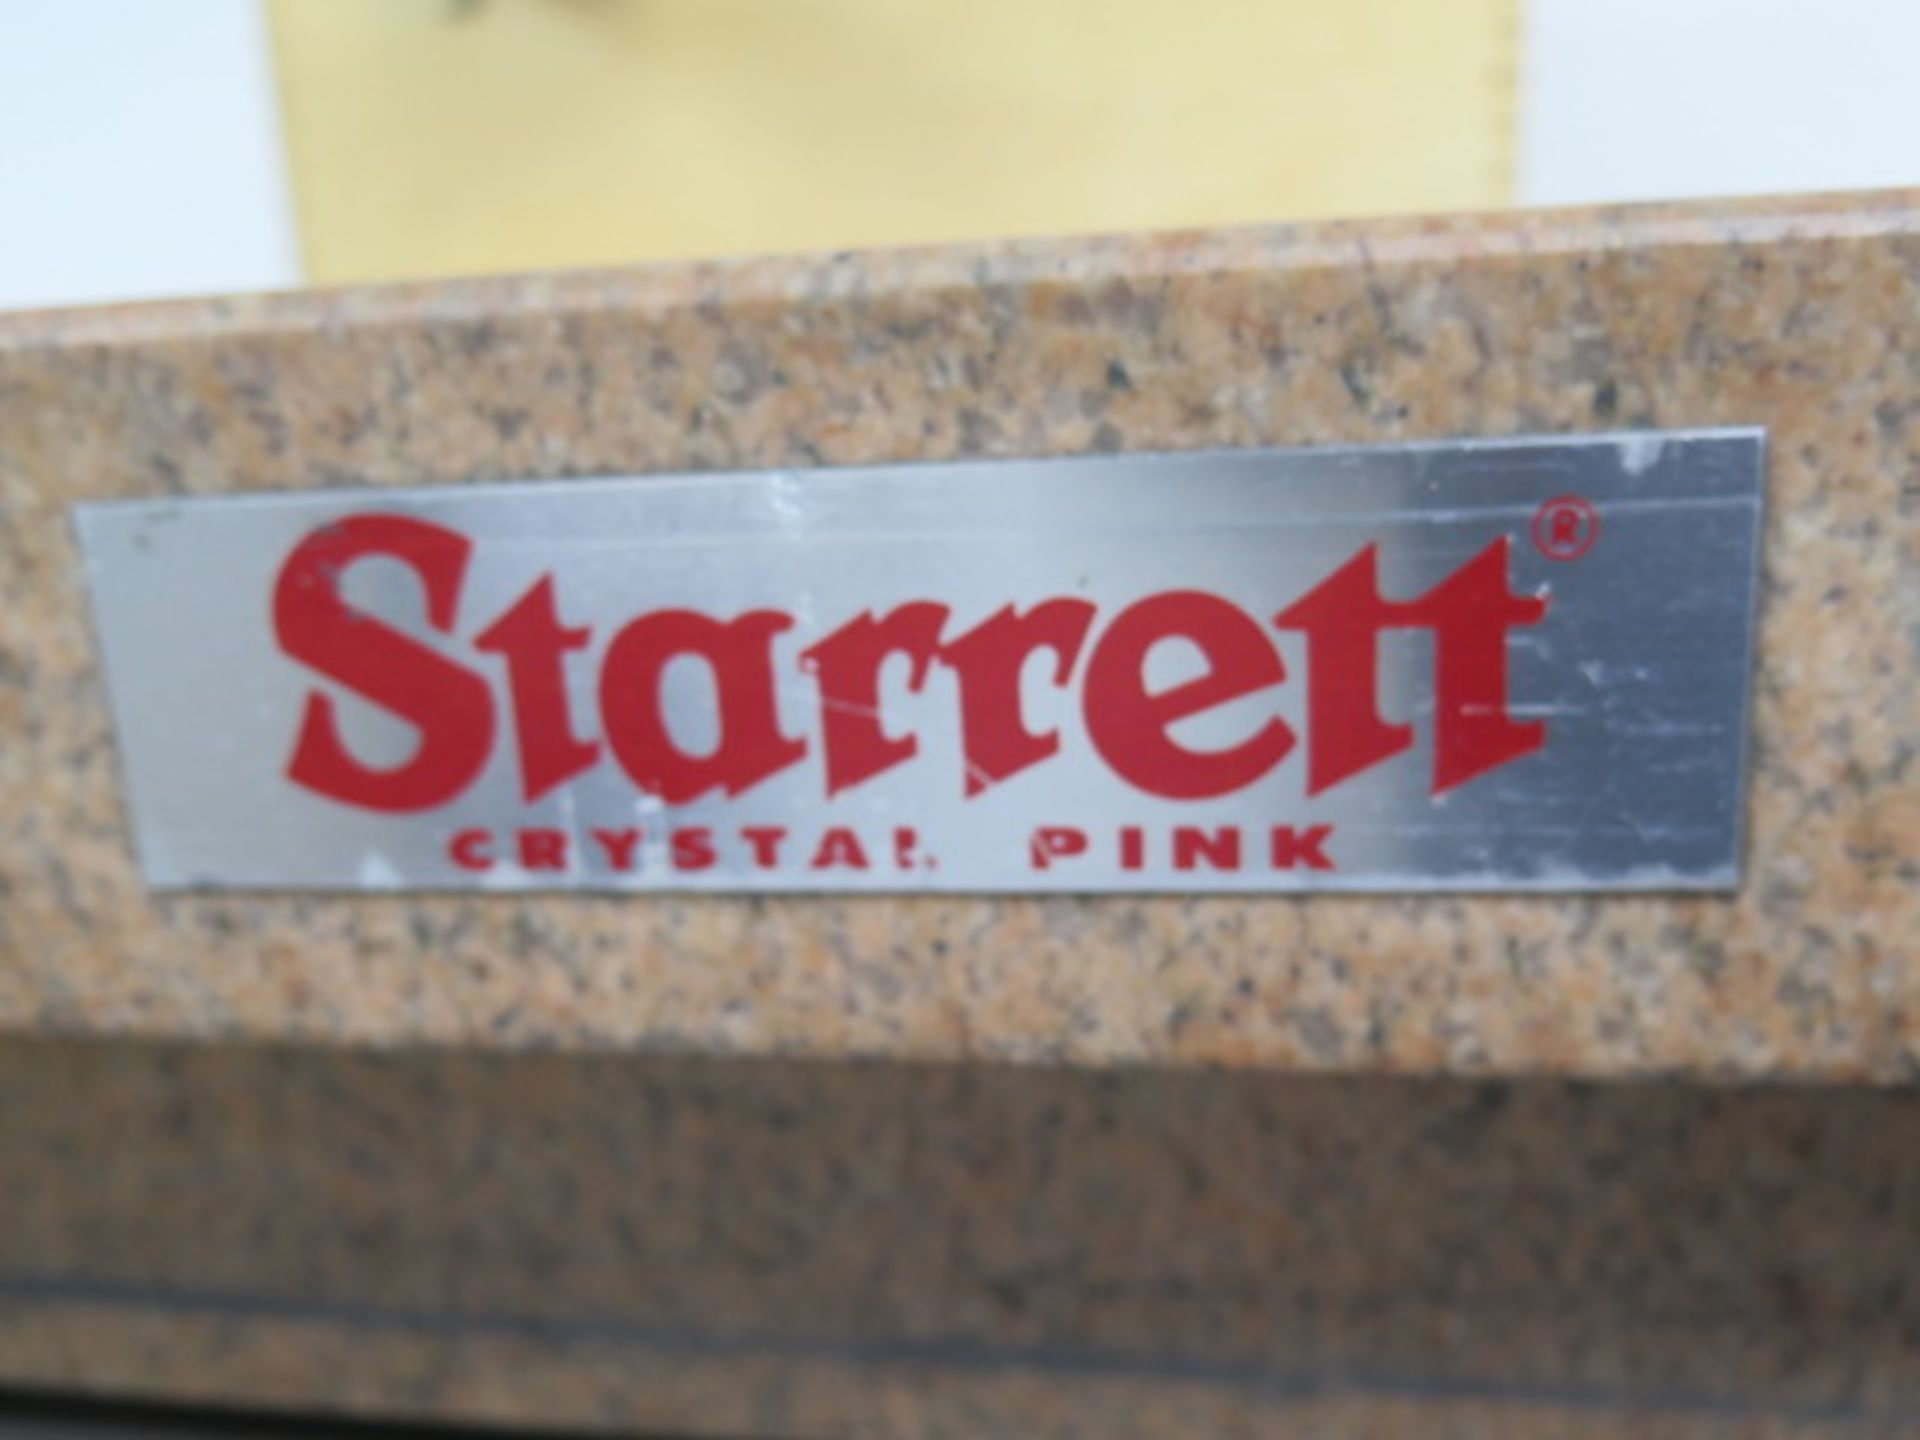 "Starrett Crystal Pink 24"" x 24"" x 6"" 4-Ledge Granite Surface Plate w/ Roll Stand (SOLD AS-IS - NO - Image 4 of 5"